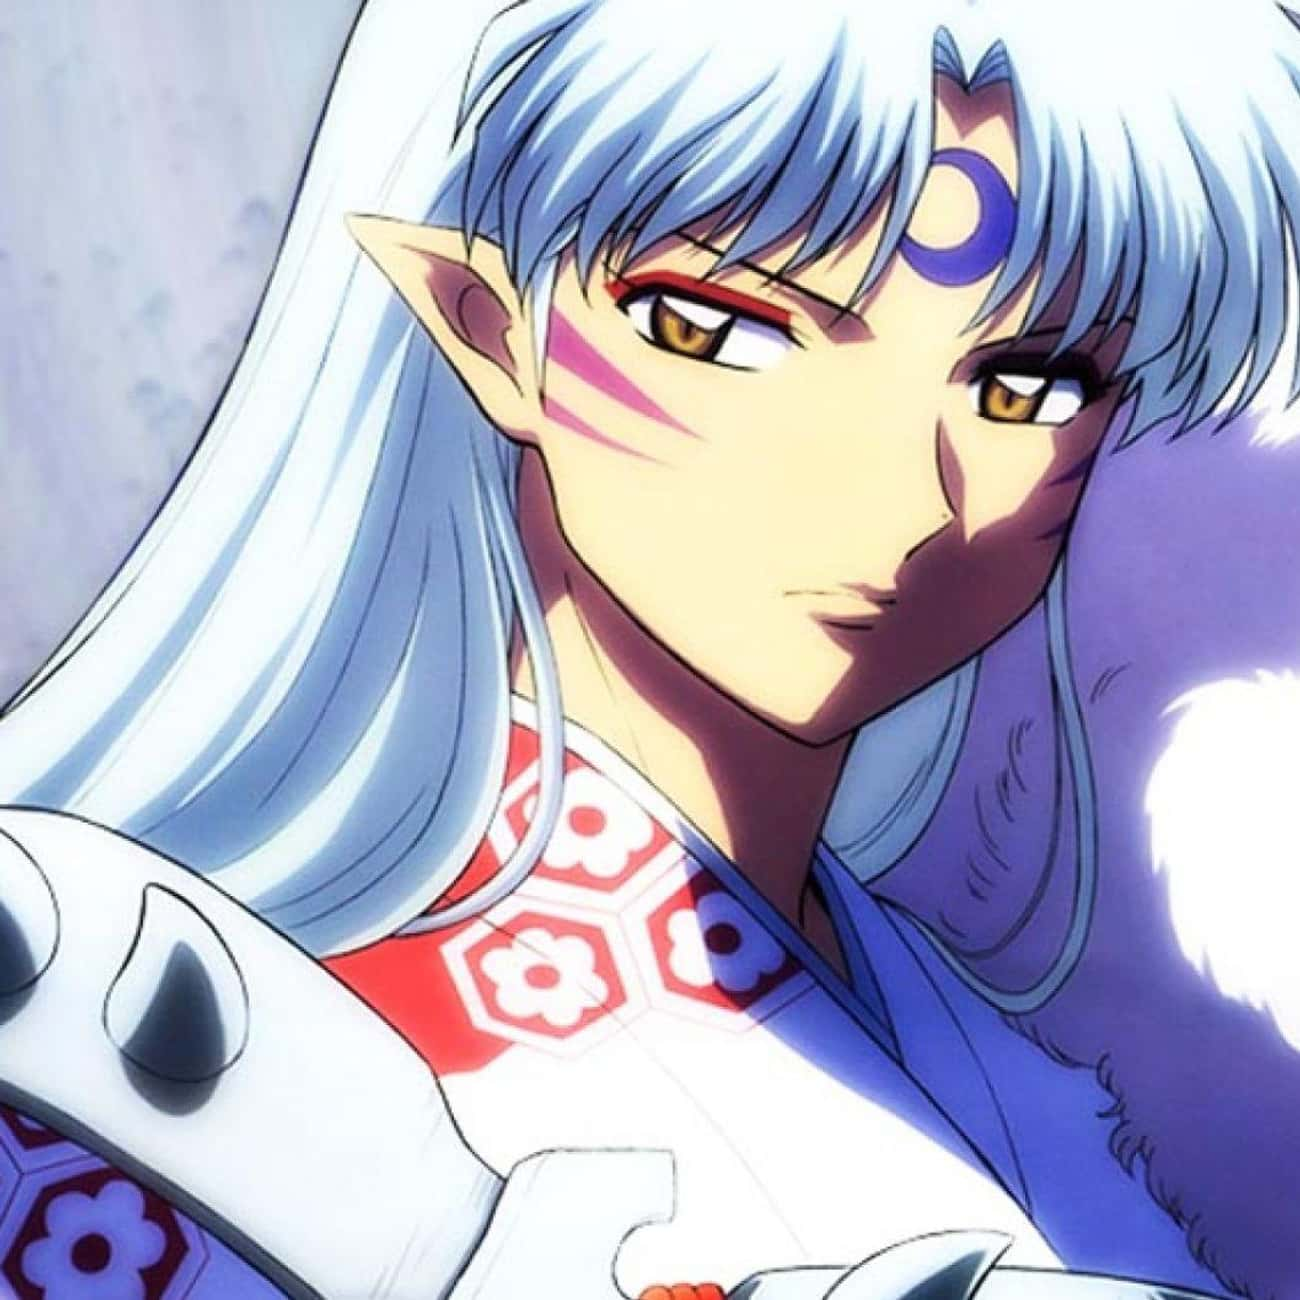 InuYasha is listed (or ranked) 4 on the list The Best Anime Like Noragami